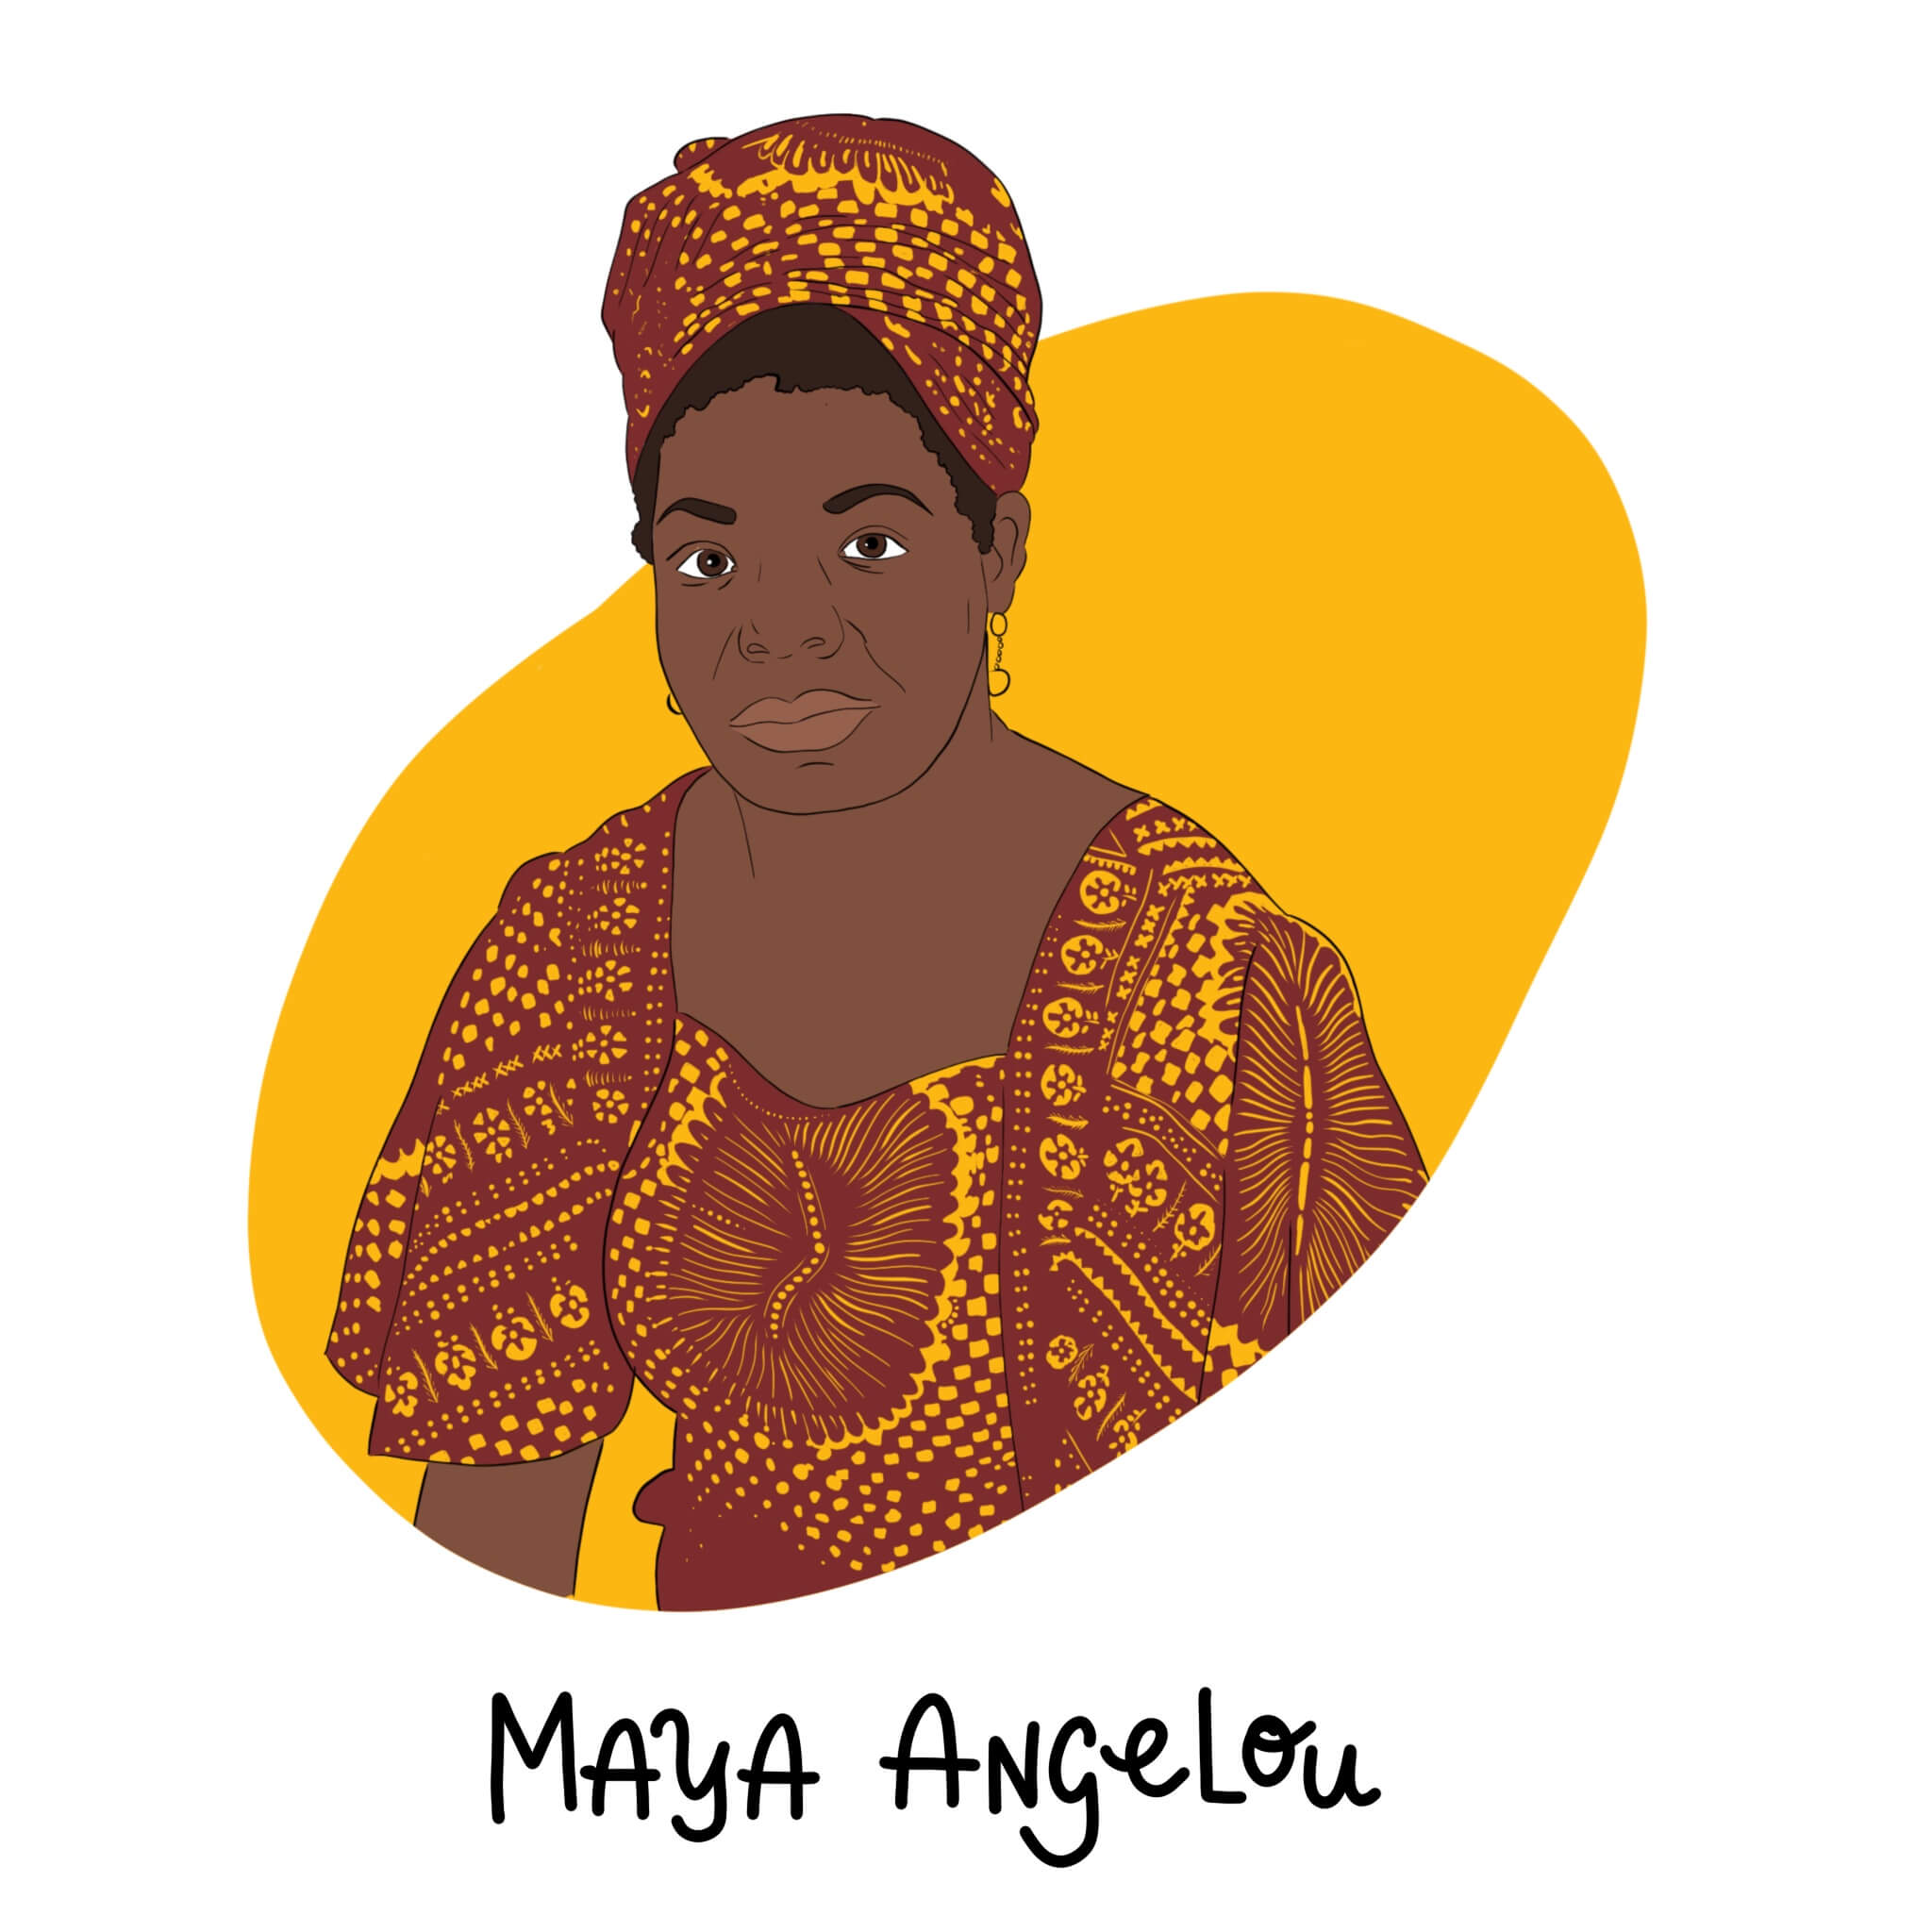 Maya Angelou Illustration by Jessica Ringelstein